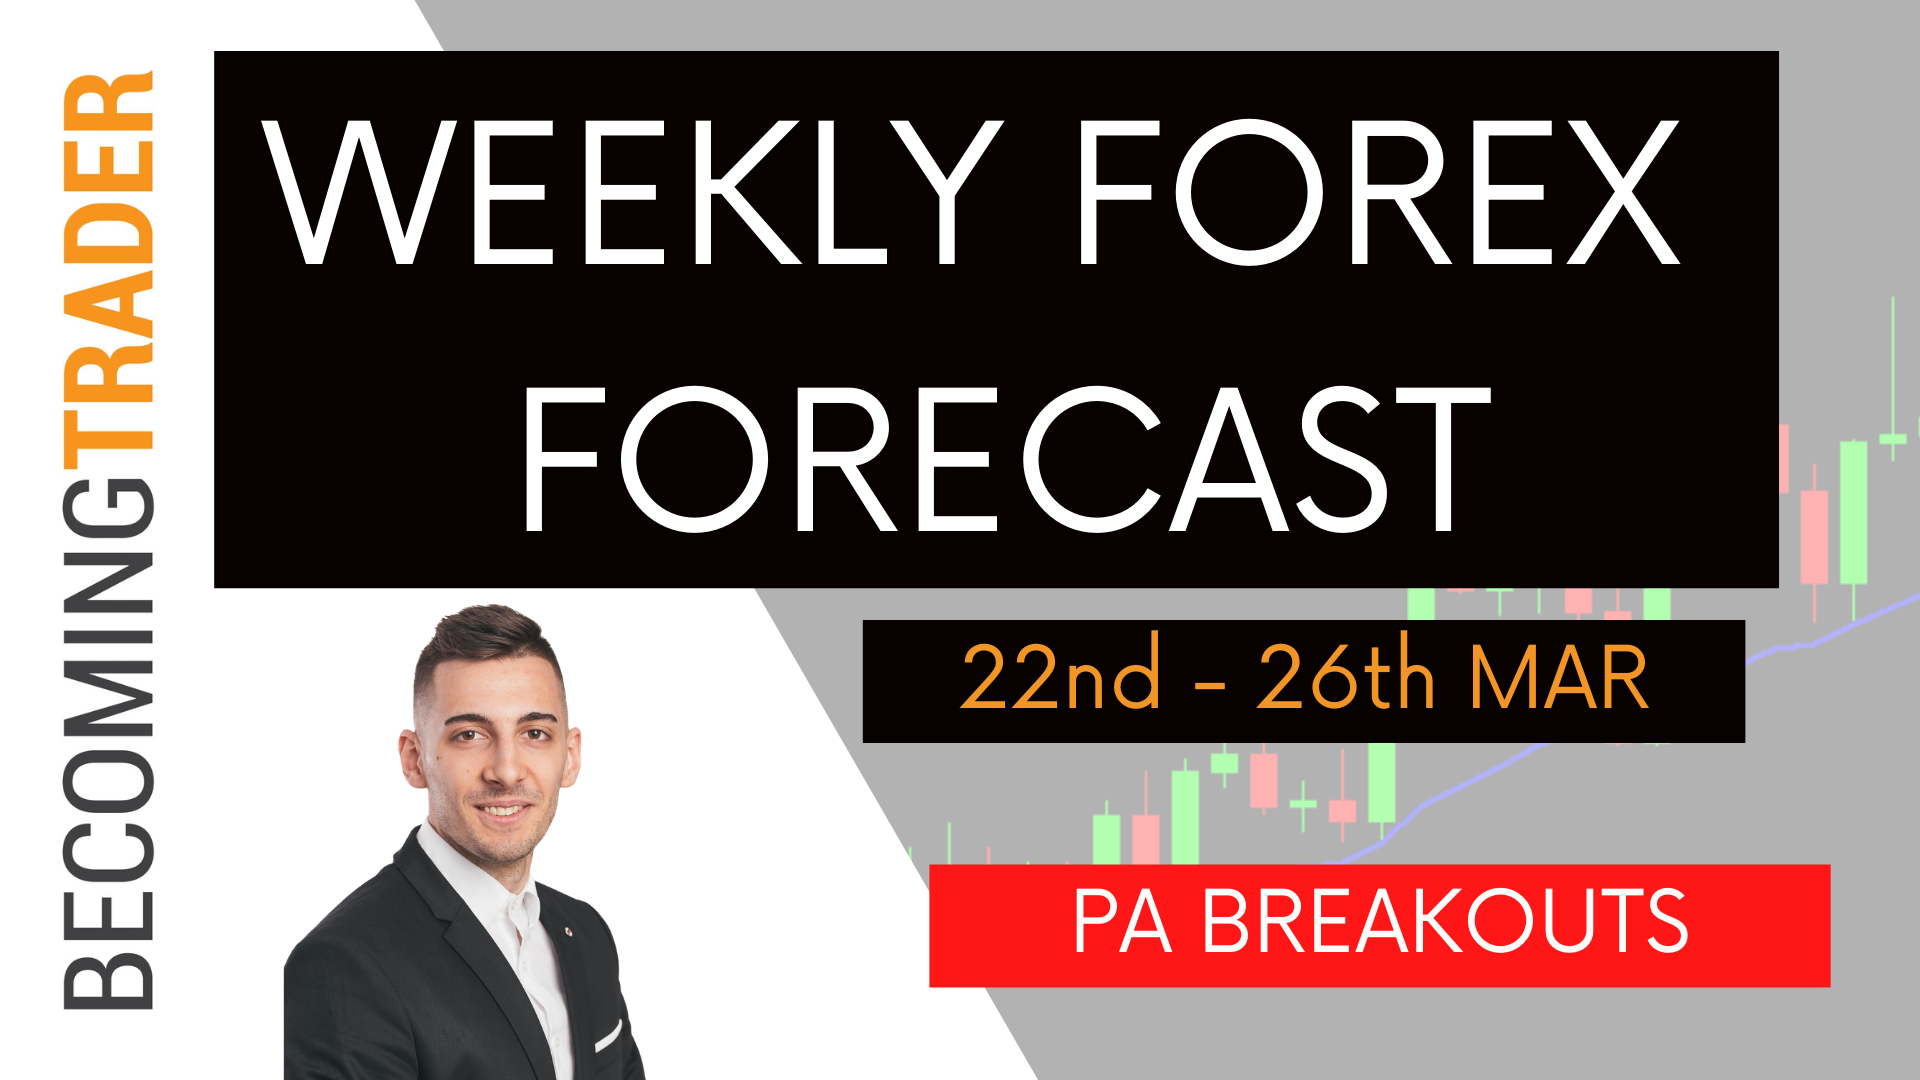 Weekly Forex Forecast 22nd to 26th March 2021 | Price Action & Breakouts